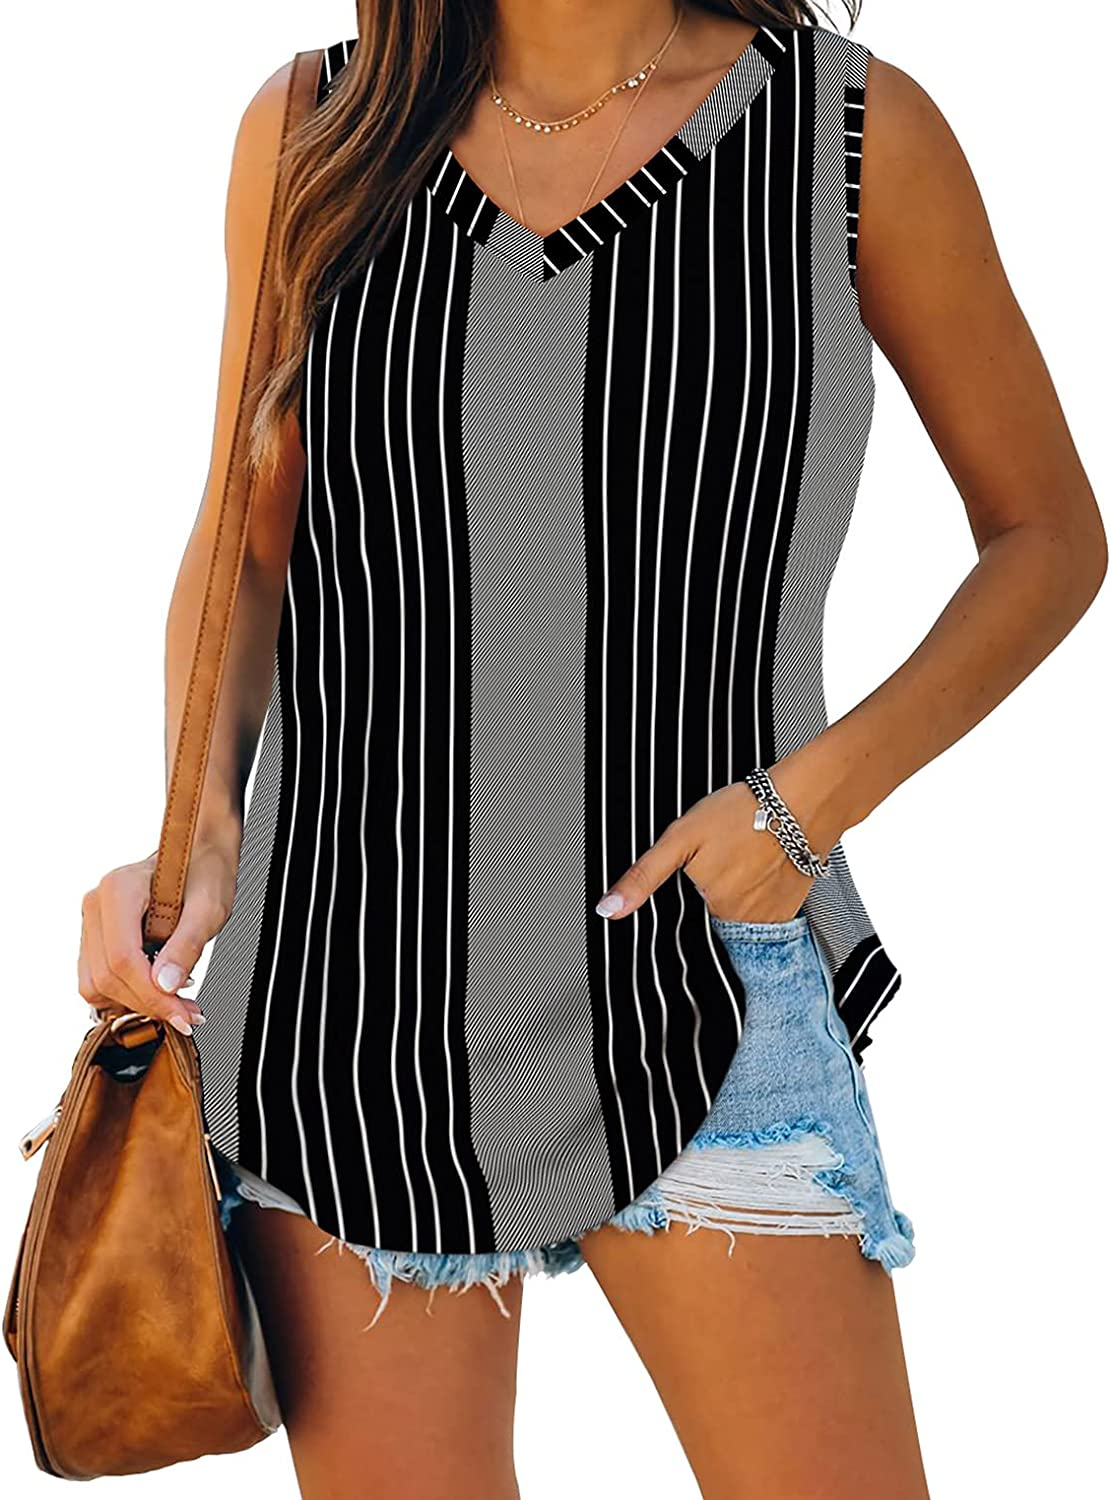 XIEERDUO Womens Tank Tops V Neck Basic Solid Color Casual Flowy Summer Sleeveless